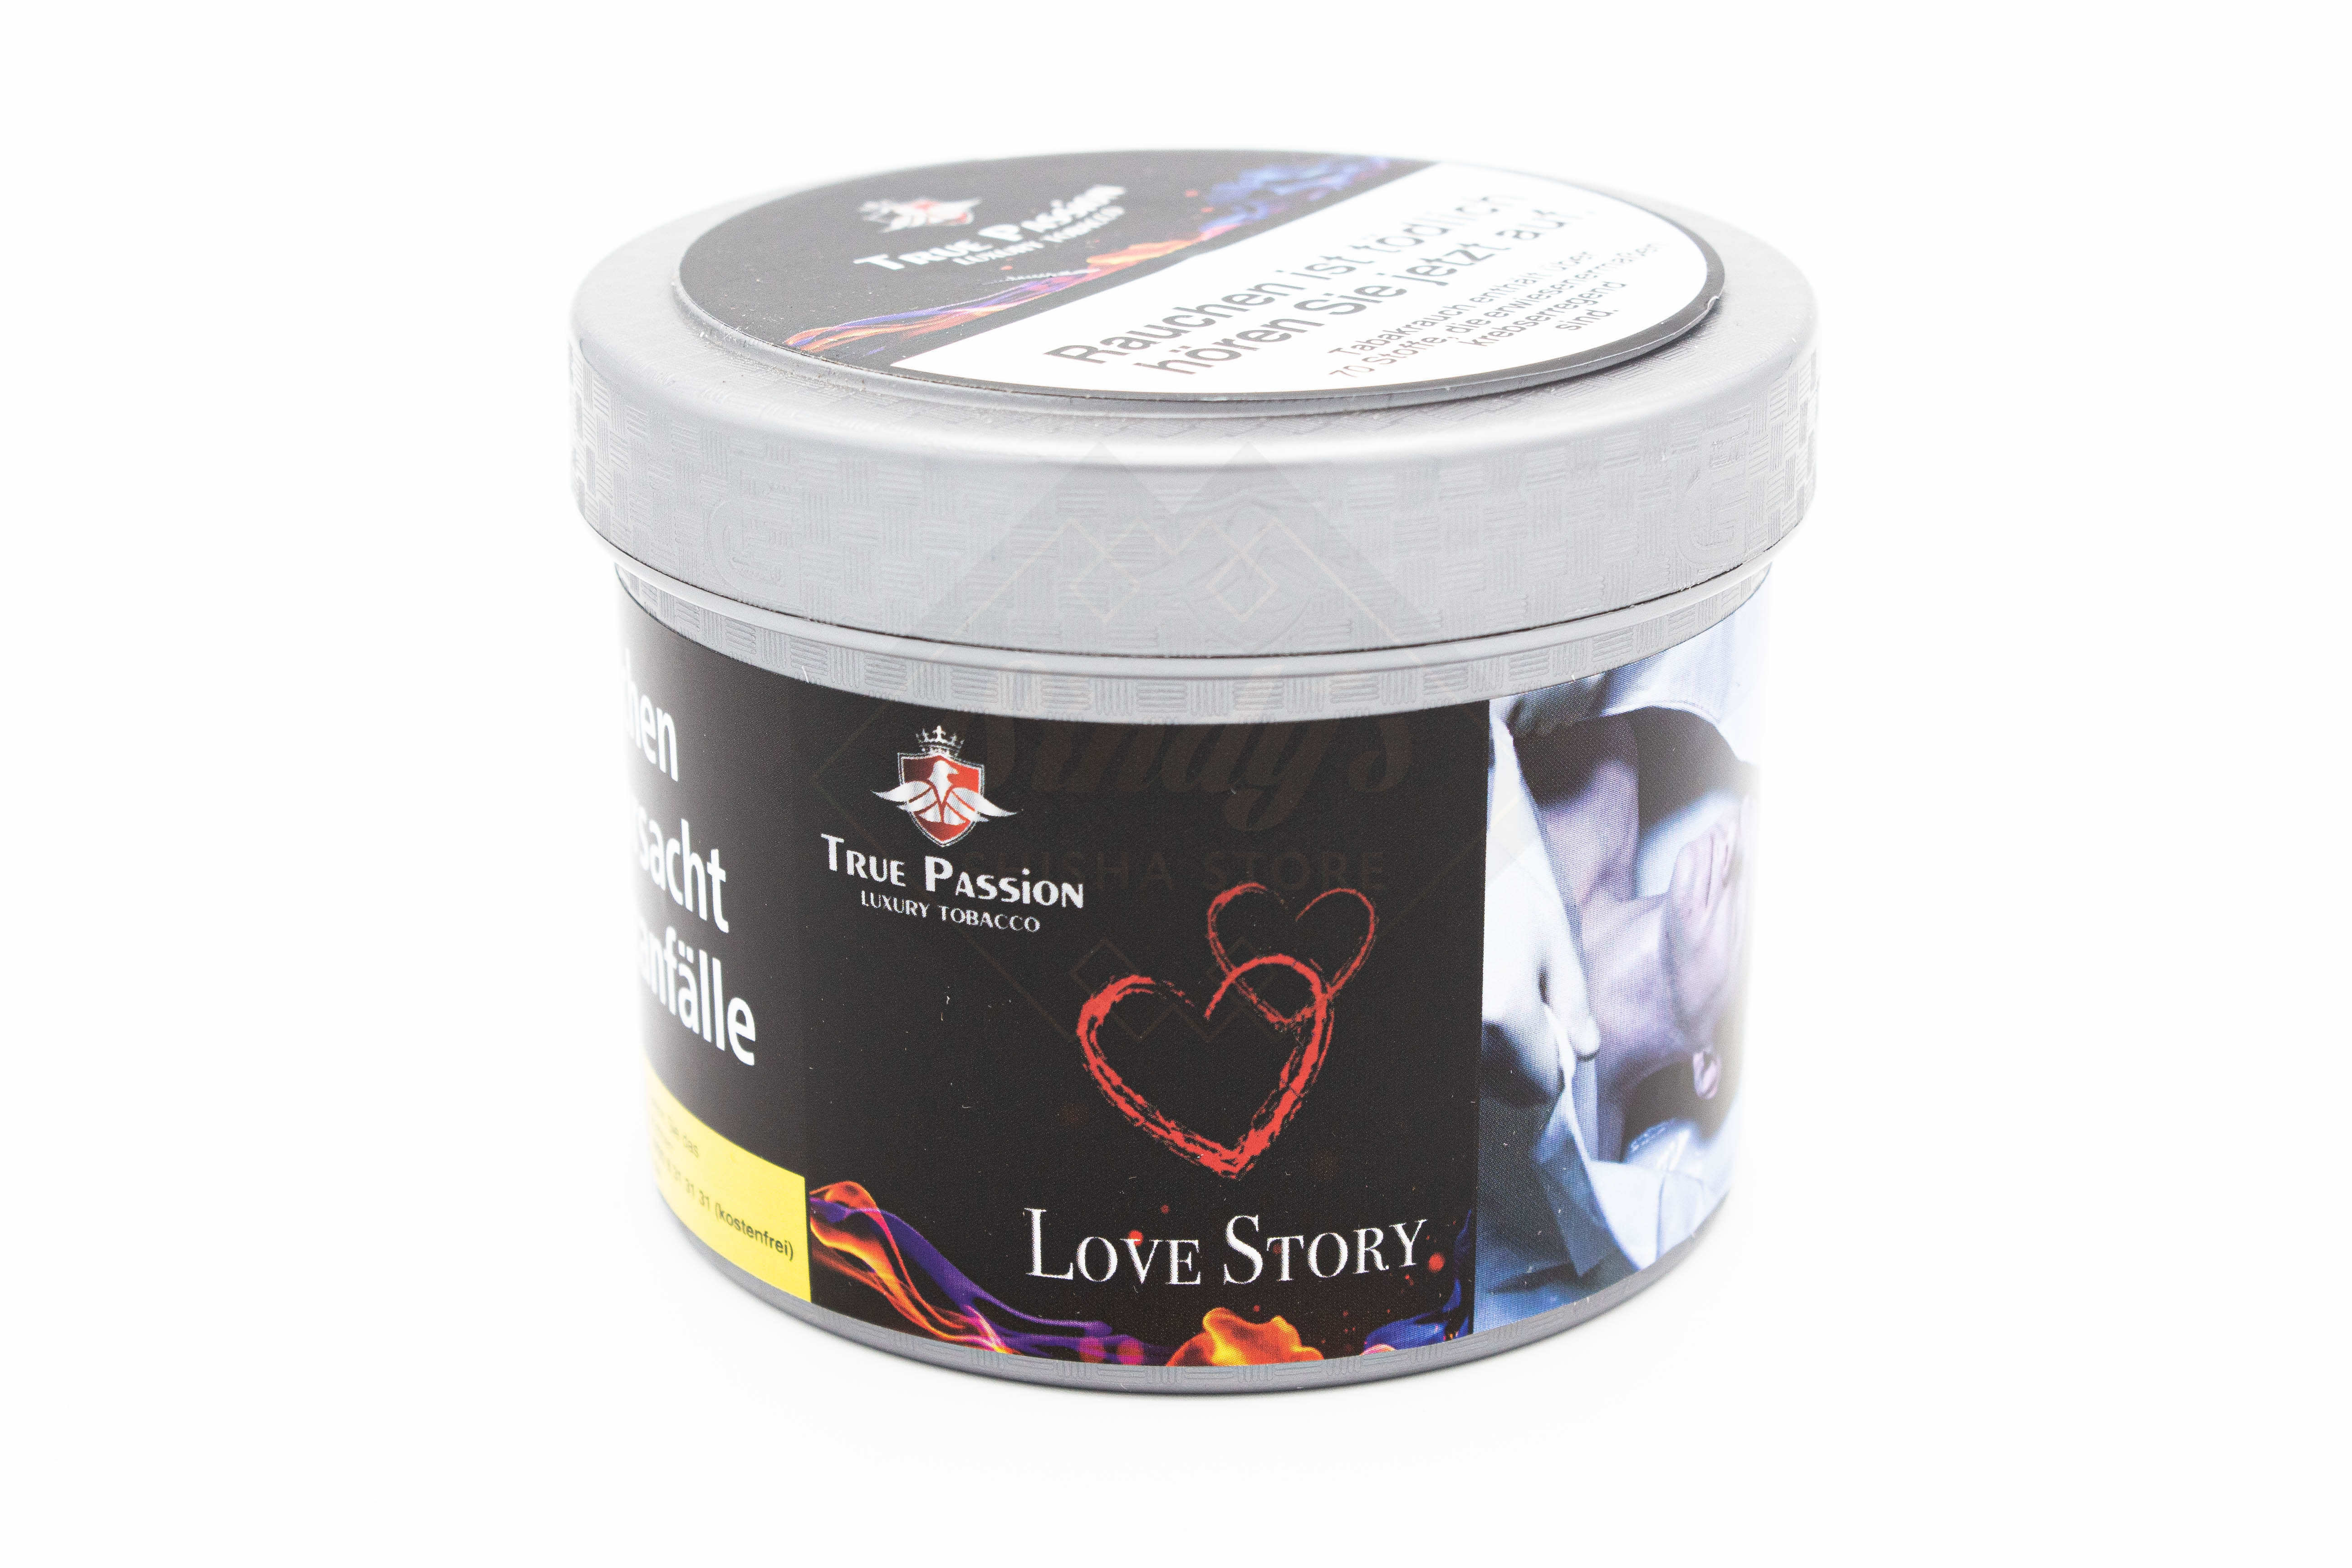 True Passion Tobacco - Lovestory 200g